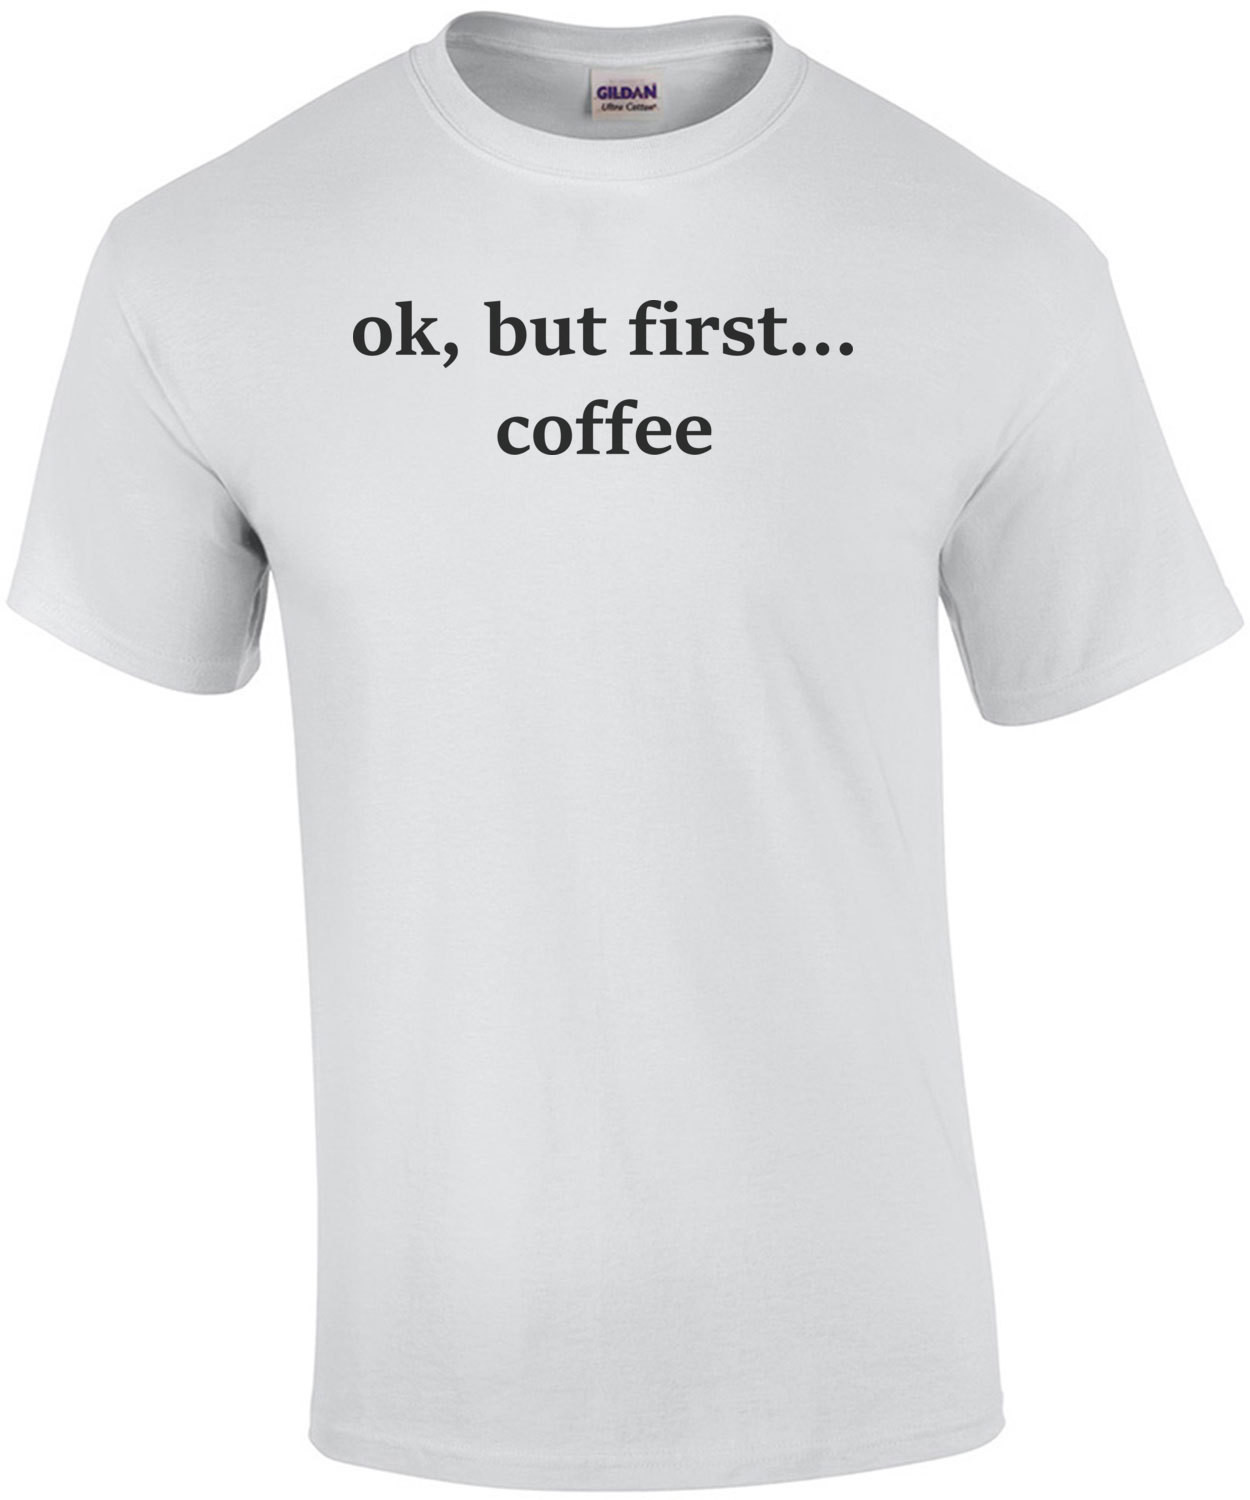 ok, but first... coffee. Coffee T-Shirt